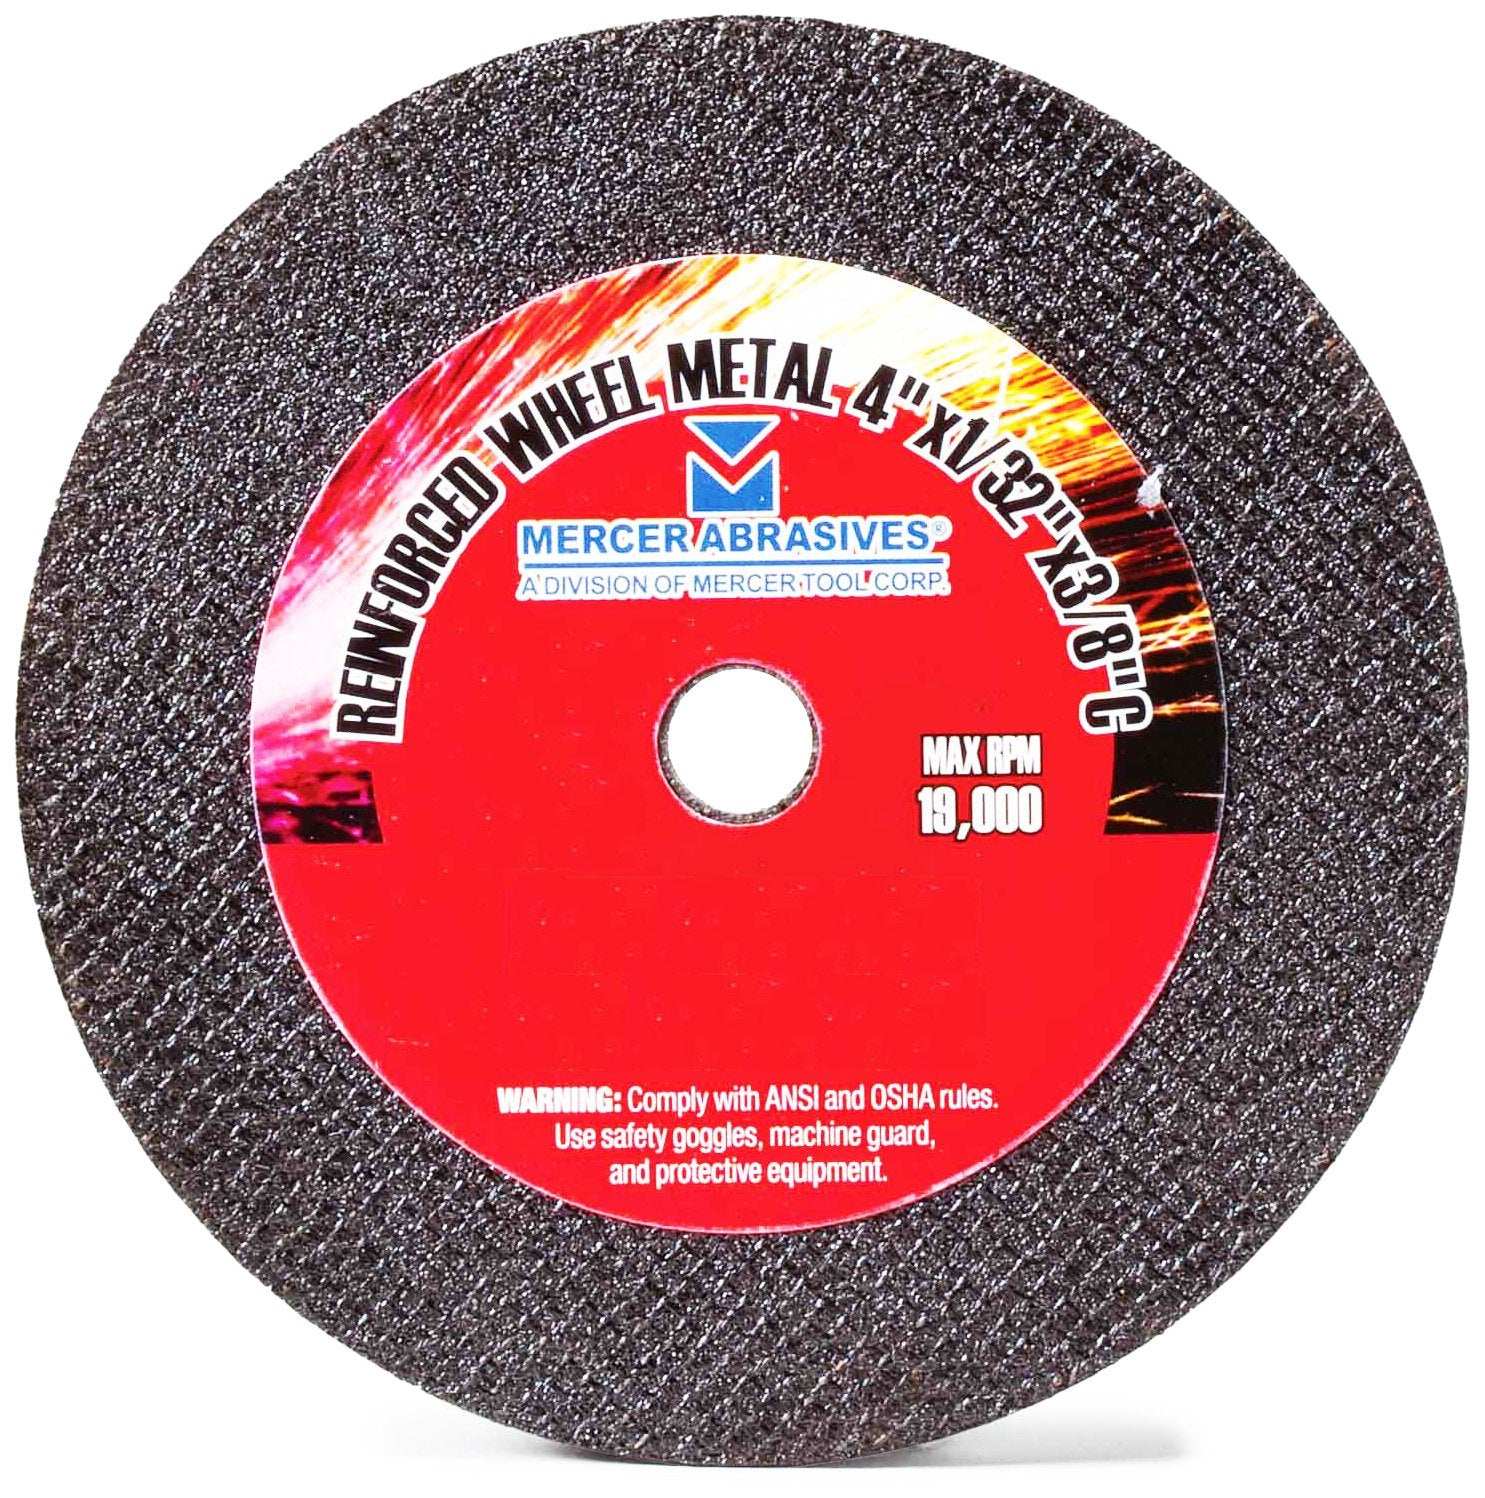 Mercer Abrasives 614150 - Small Diameter High Speed Fully Reinforced Cut-Off Wheels 4-Inch by 1/16-Inch by 5/8-Inch M,